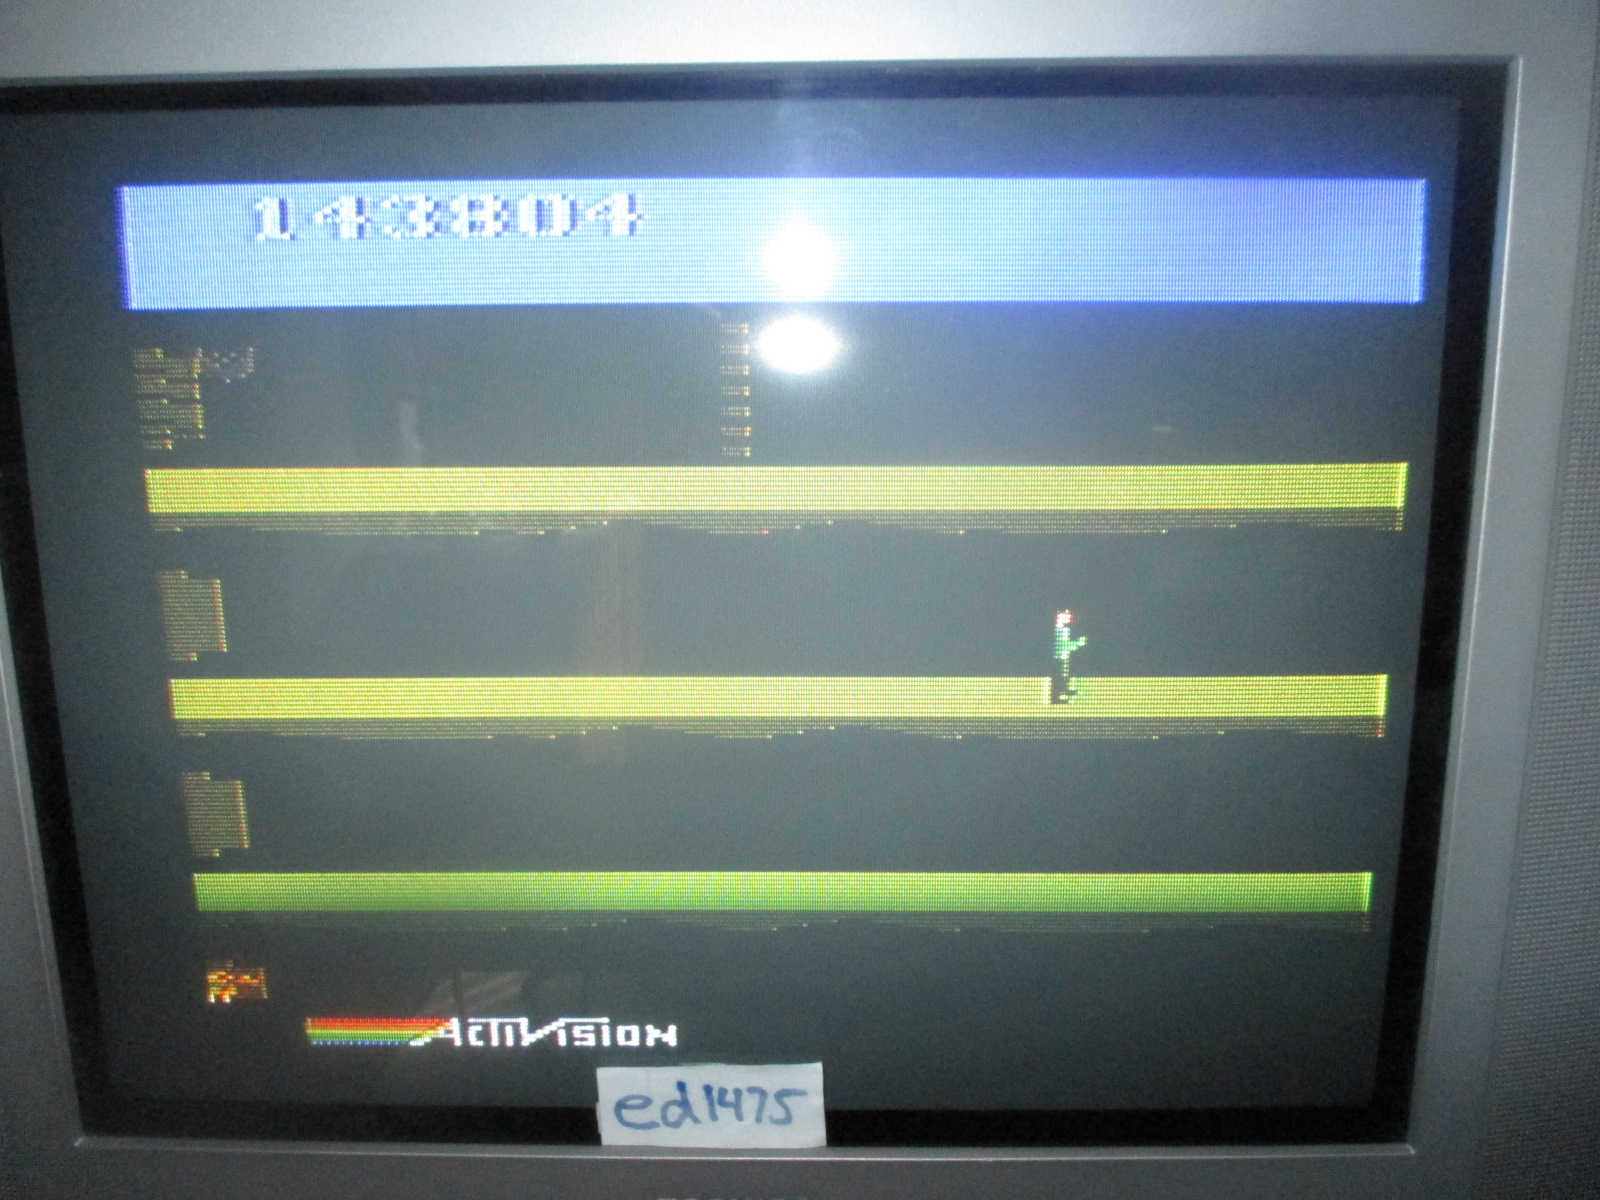 ed1475: Pitfall II: Lost Caverns (Atari 2600) 143,804 points on 2014-07-13 21:14:18